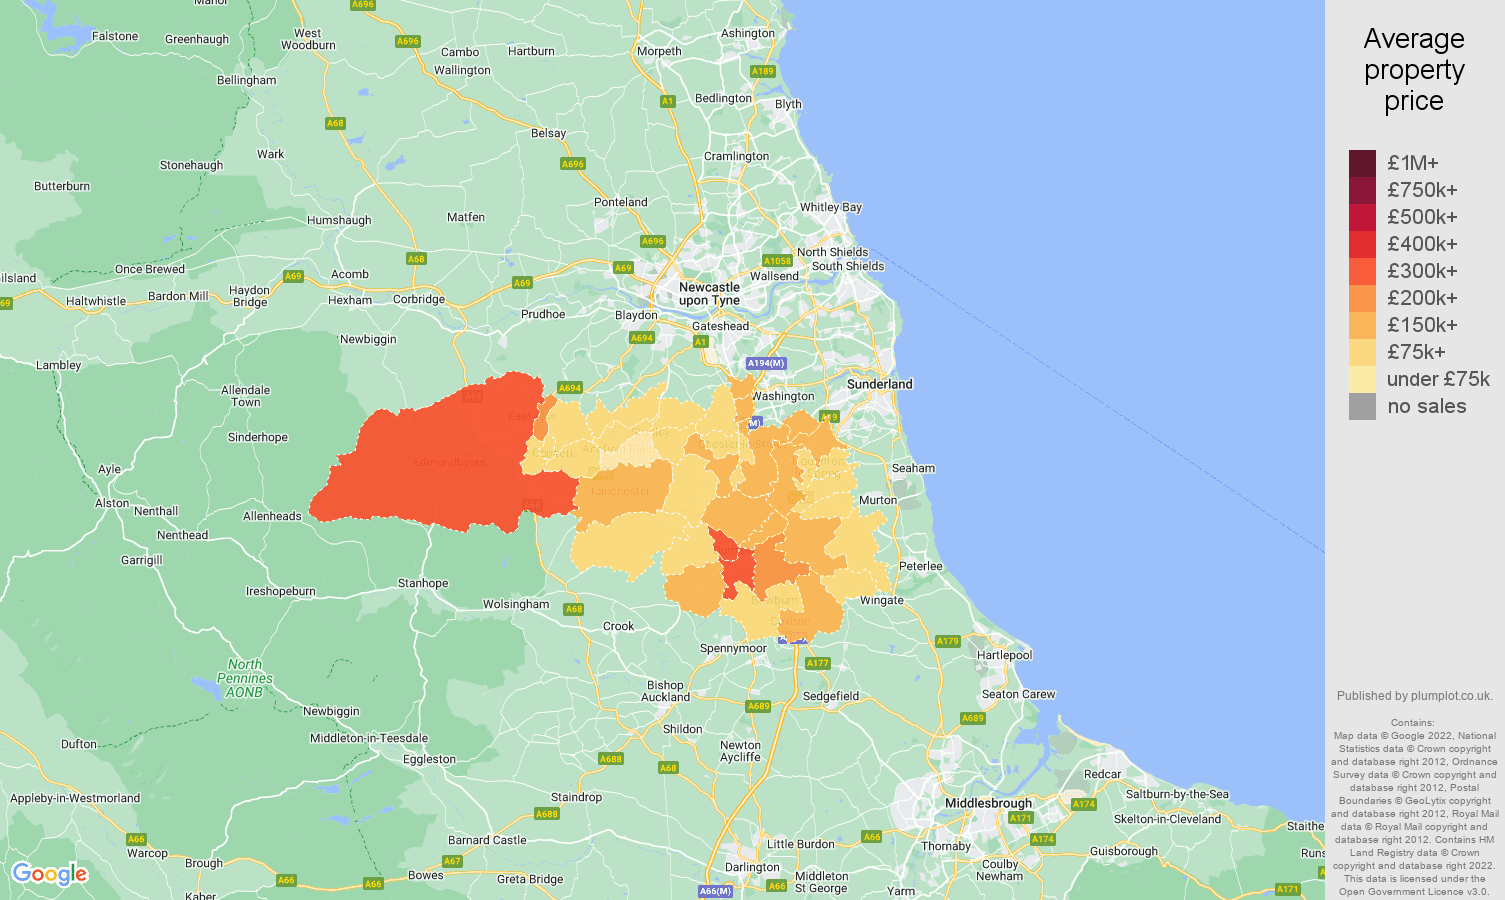 Durham House Prices In Maps And Graphs